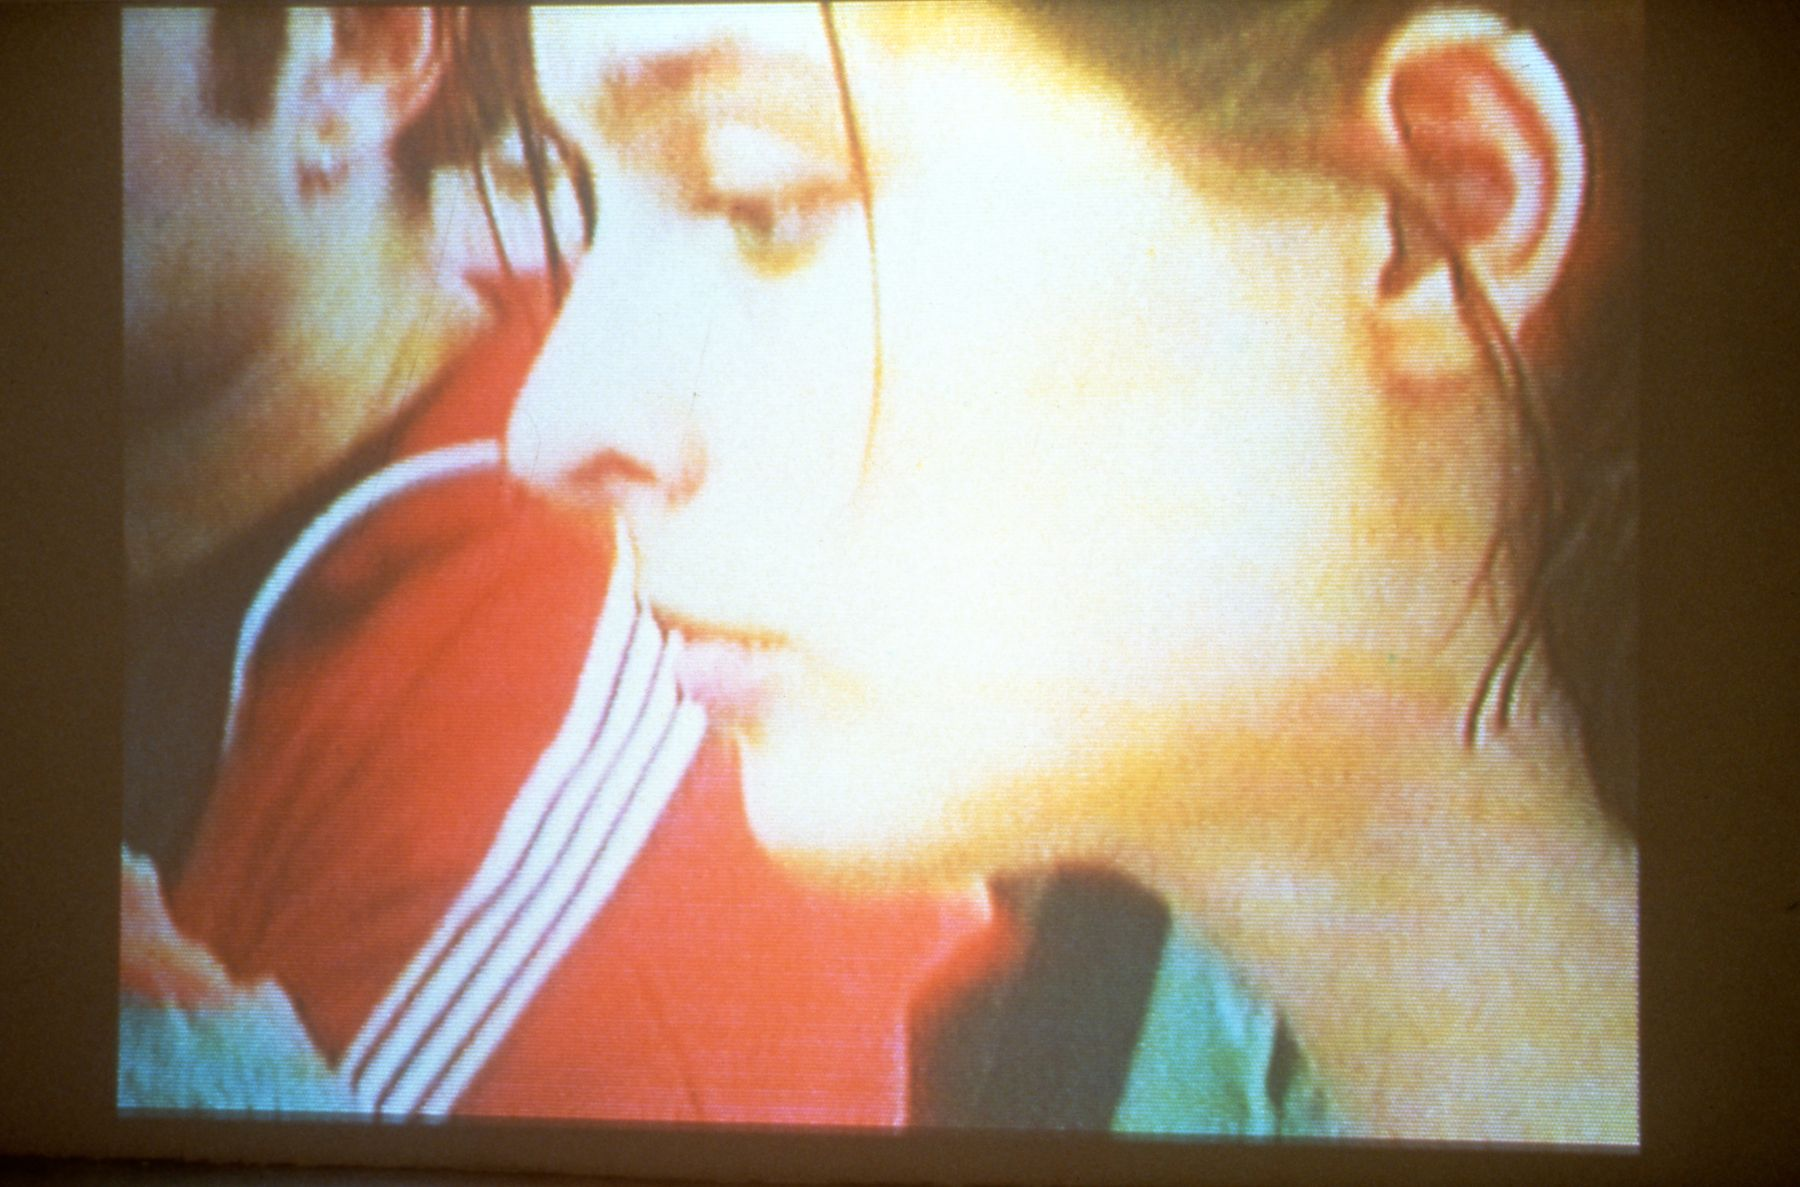 Pit Music, 1996, still from VHS video, duration: 14  minutes